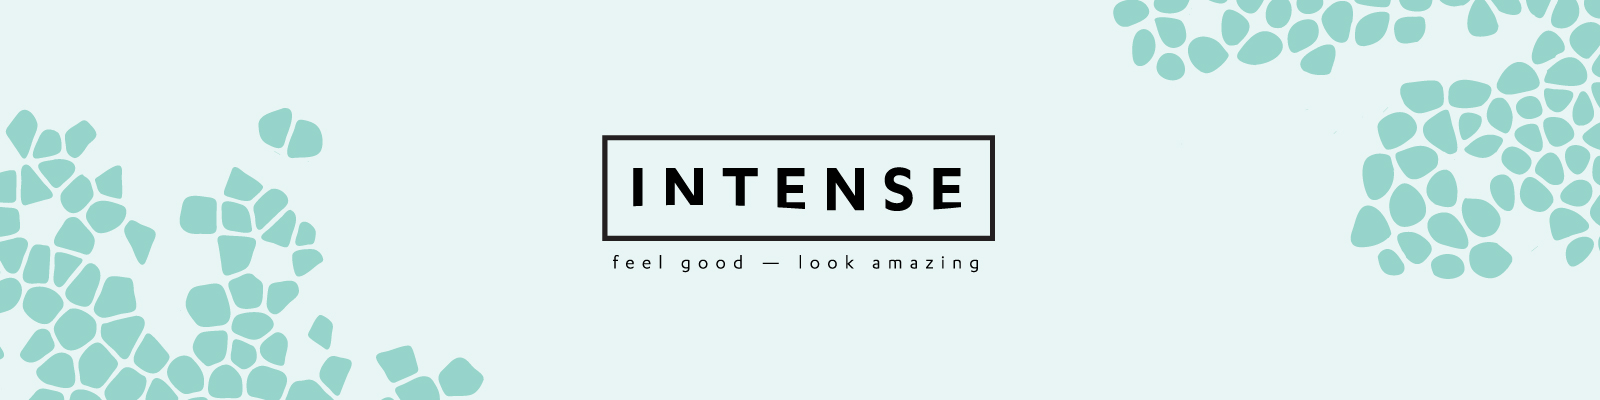 Intense feel good look amazing